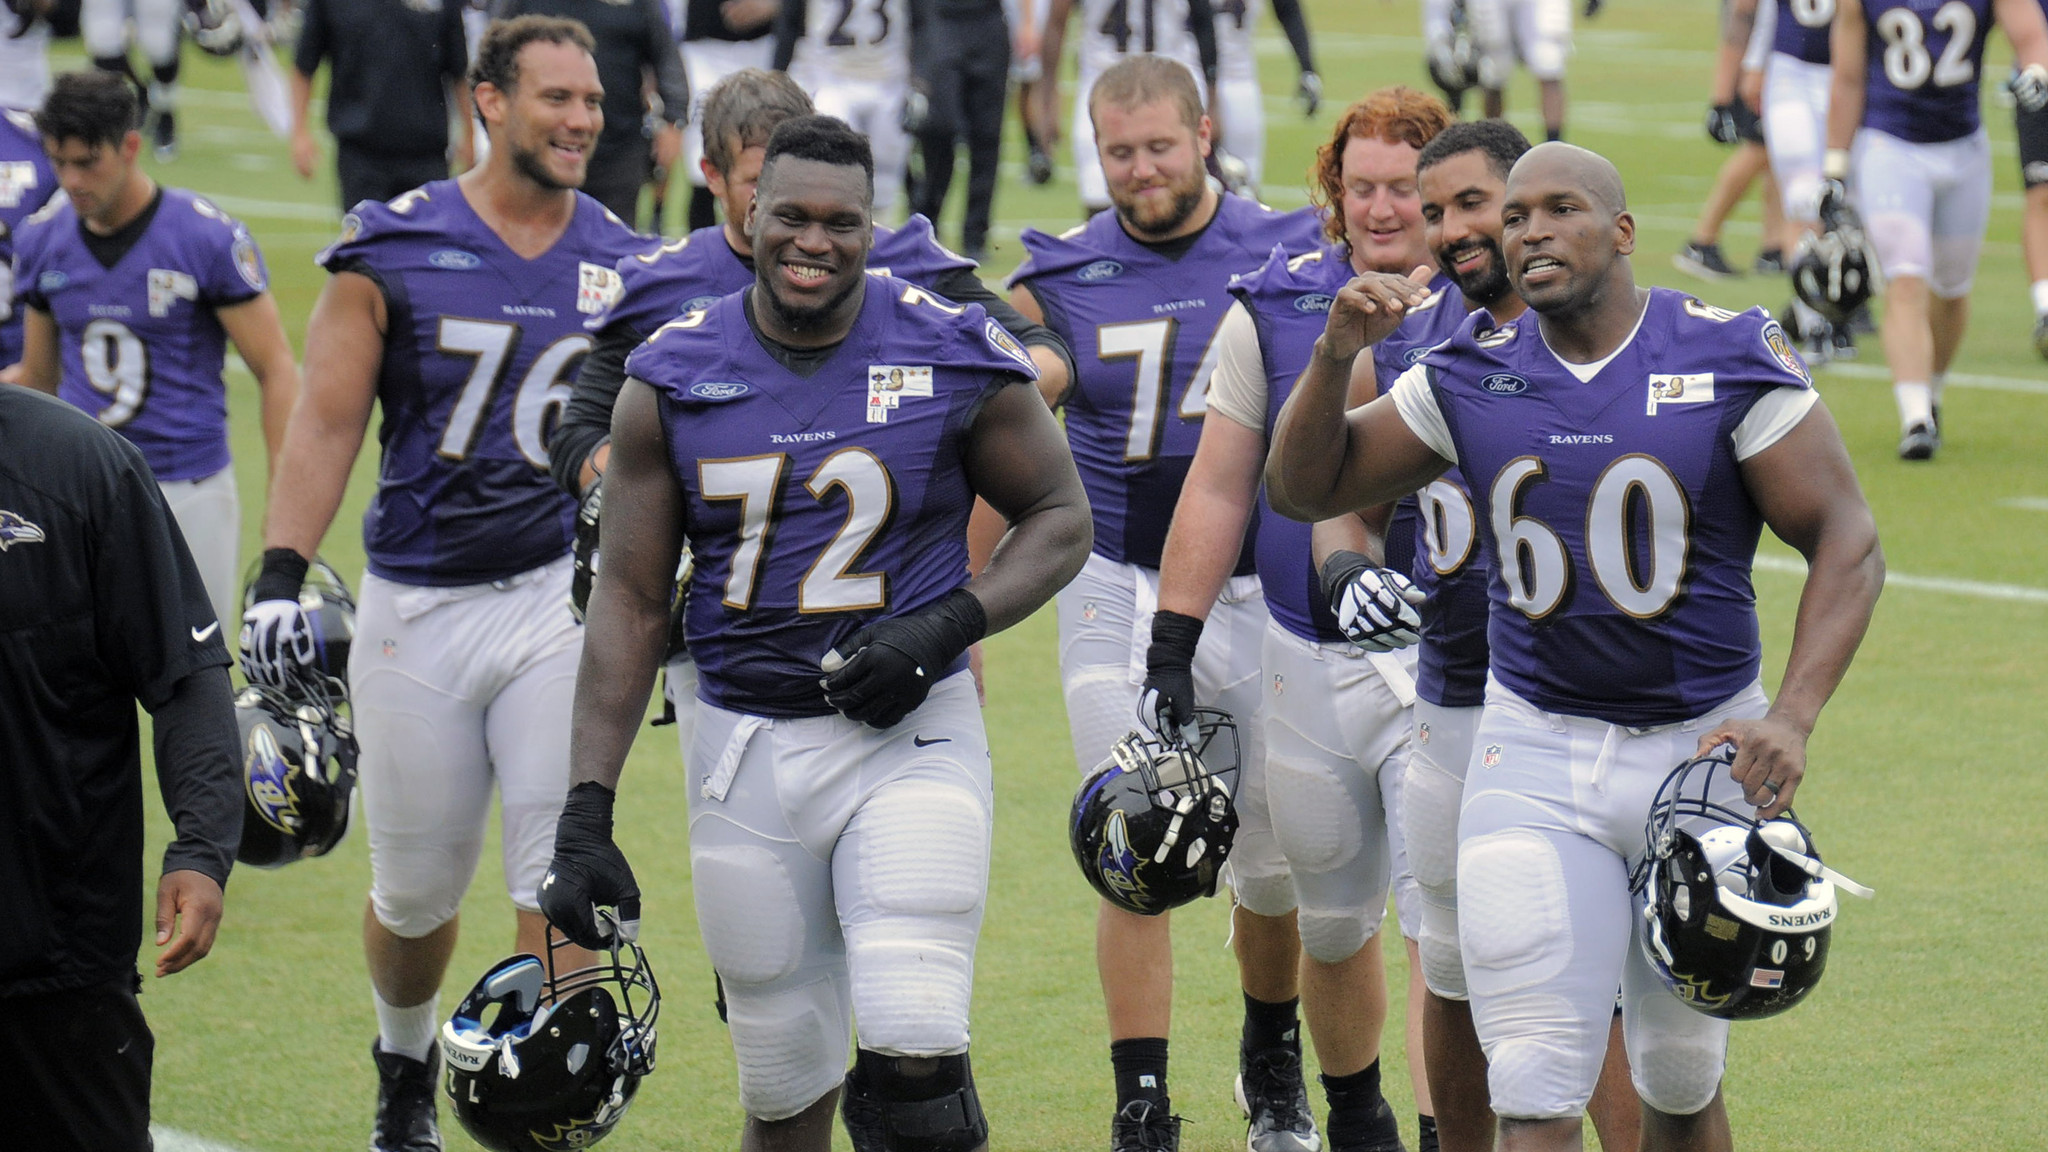 Ravens guard Kelechi Osemele feels good about his body of work